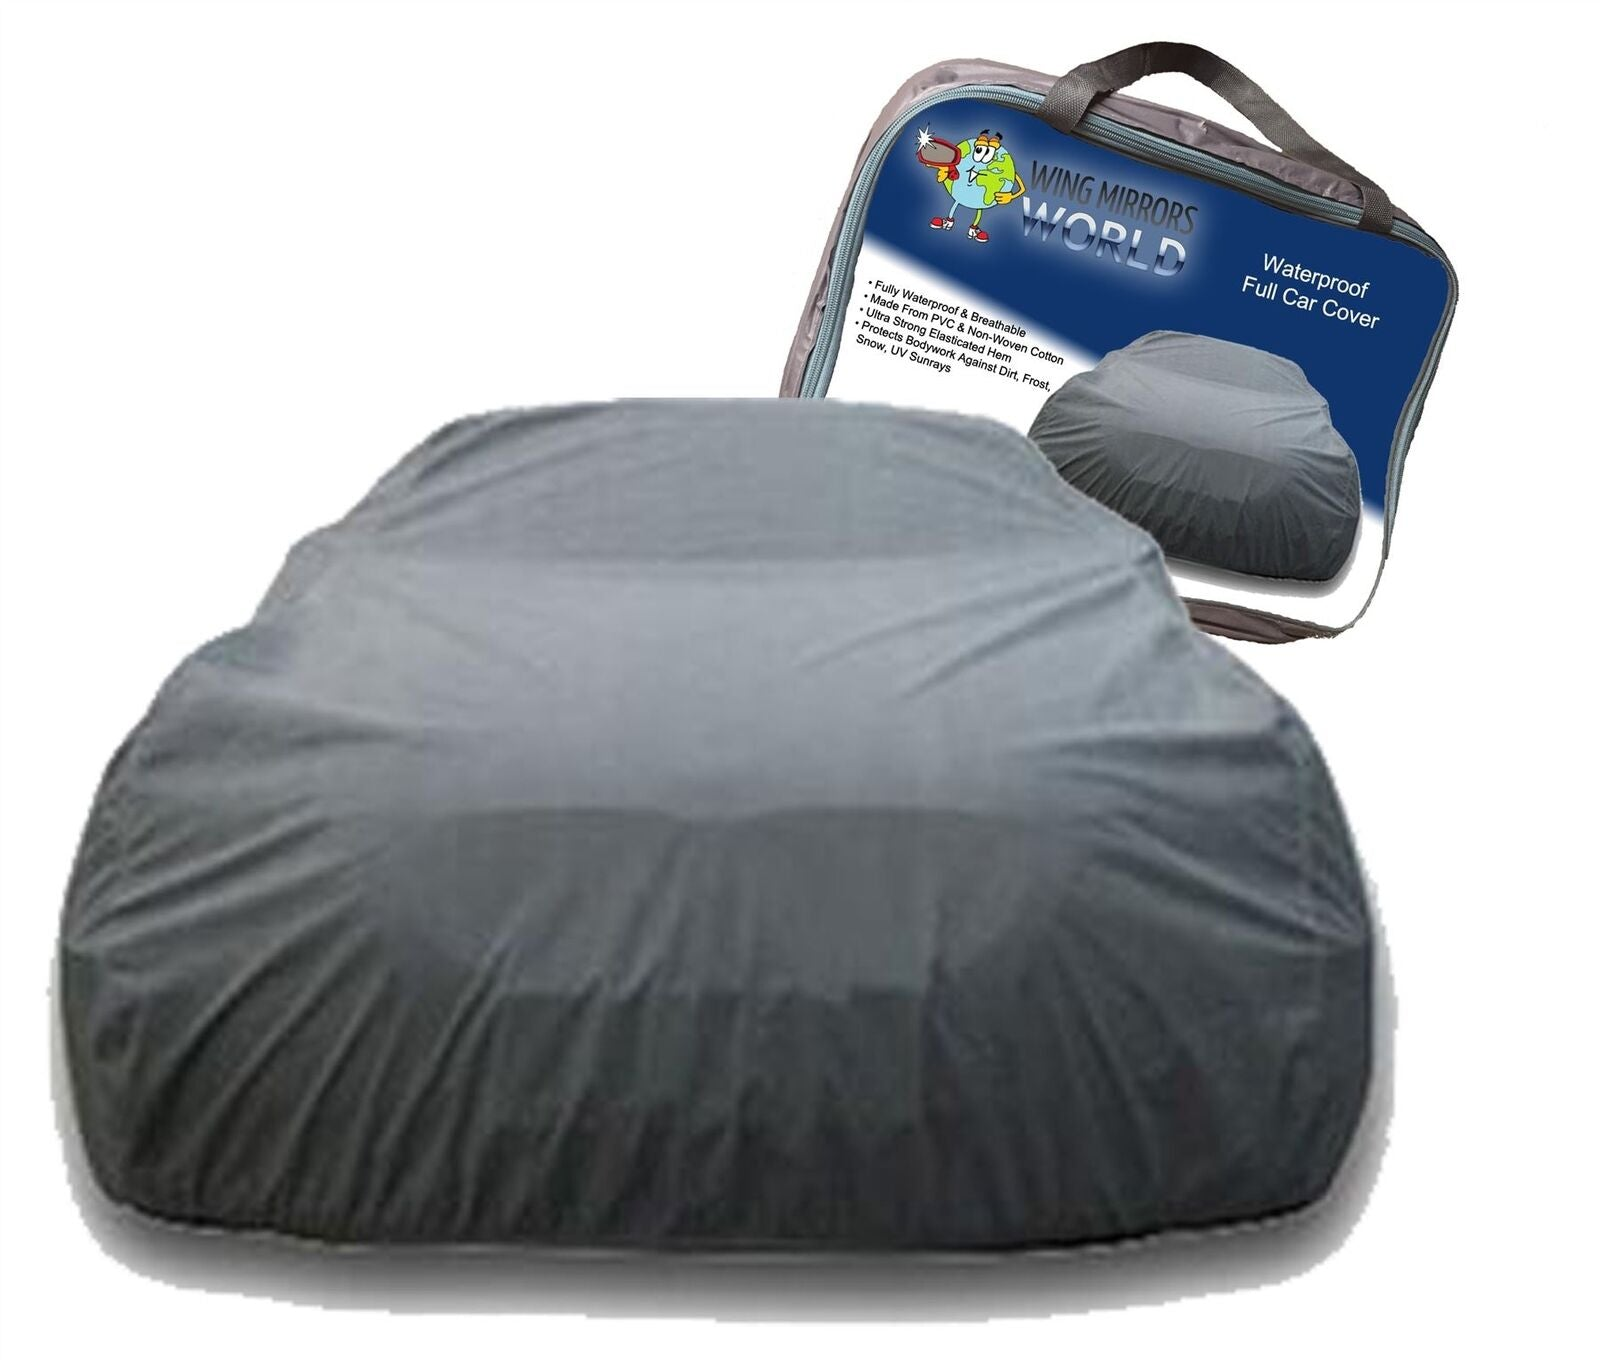 Universal Small Full Car Cover Waterproof UV Protection Indoor Outdoor SWWCCS